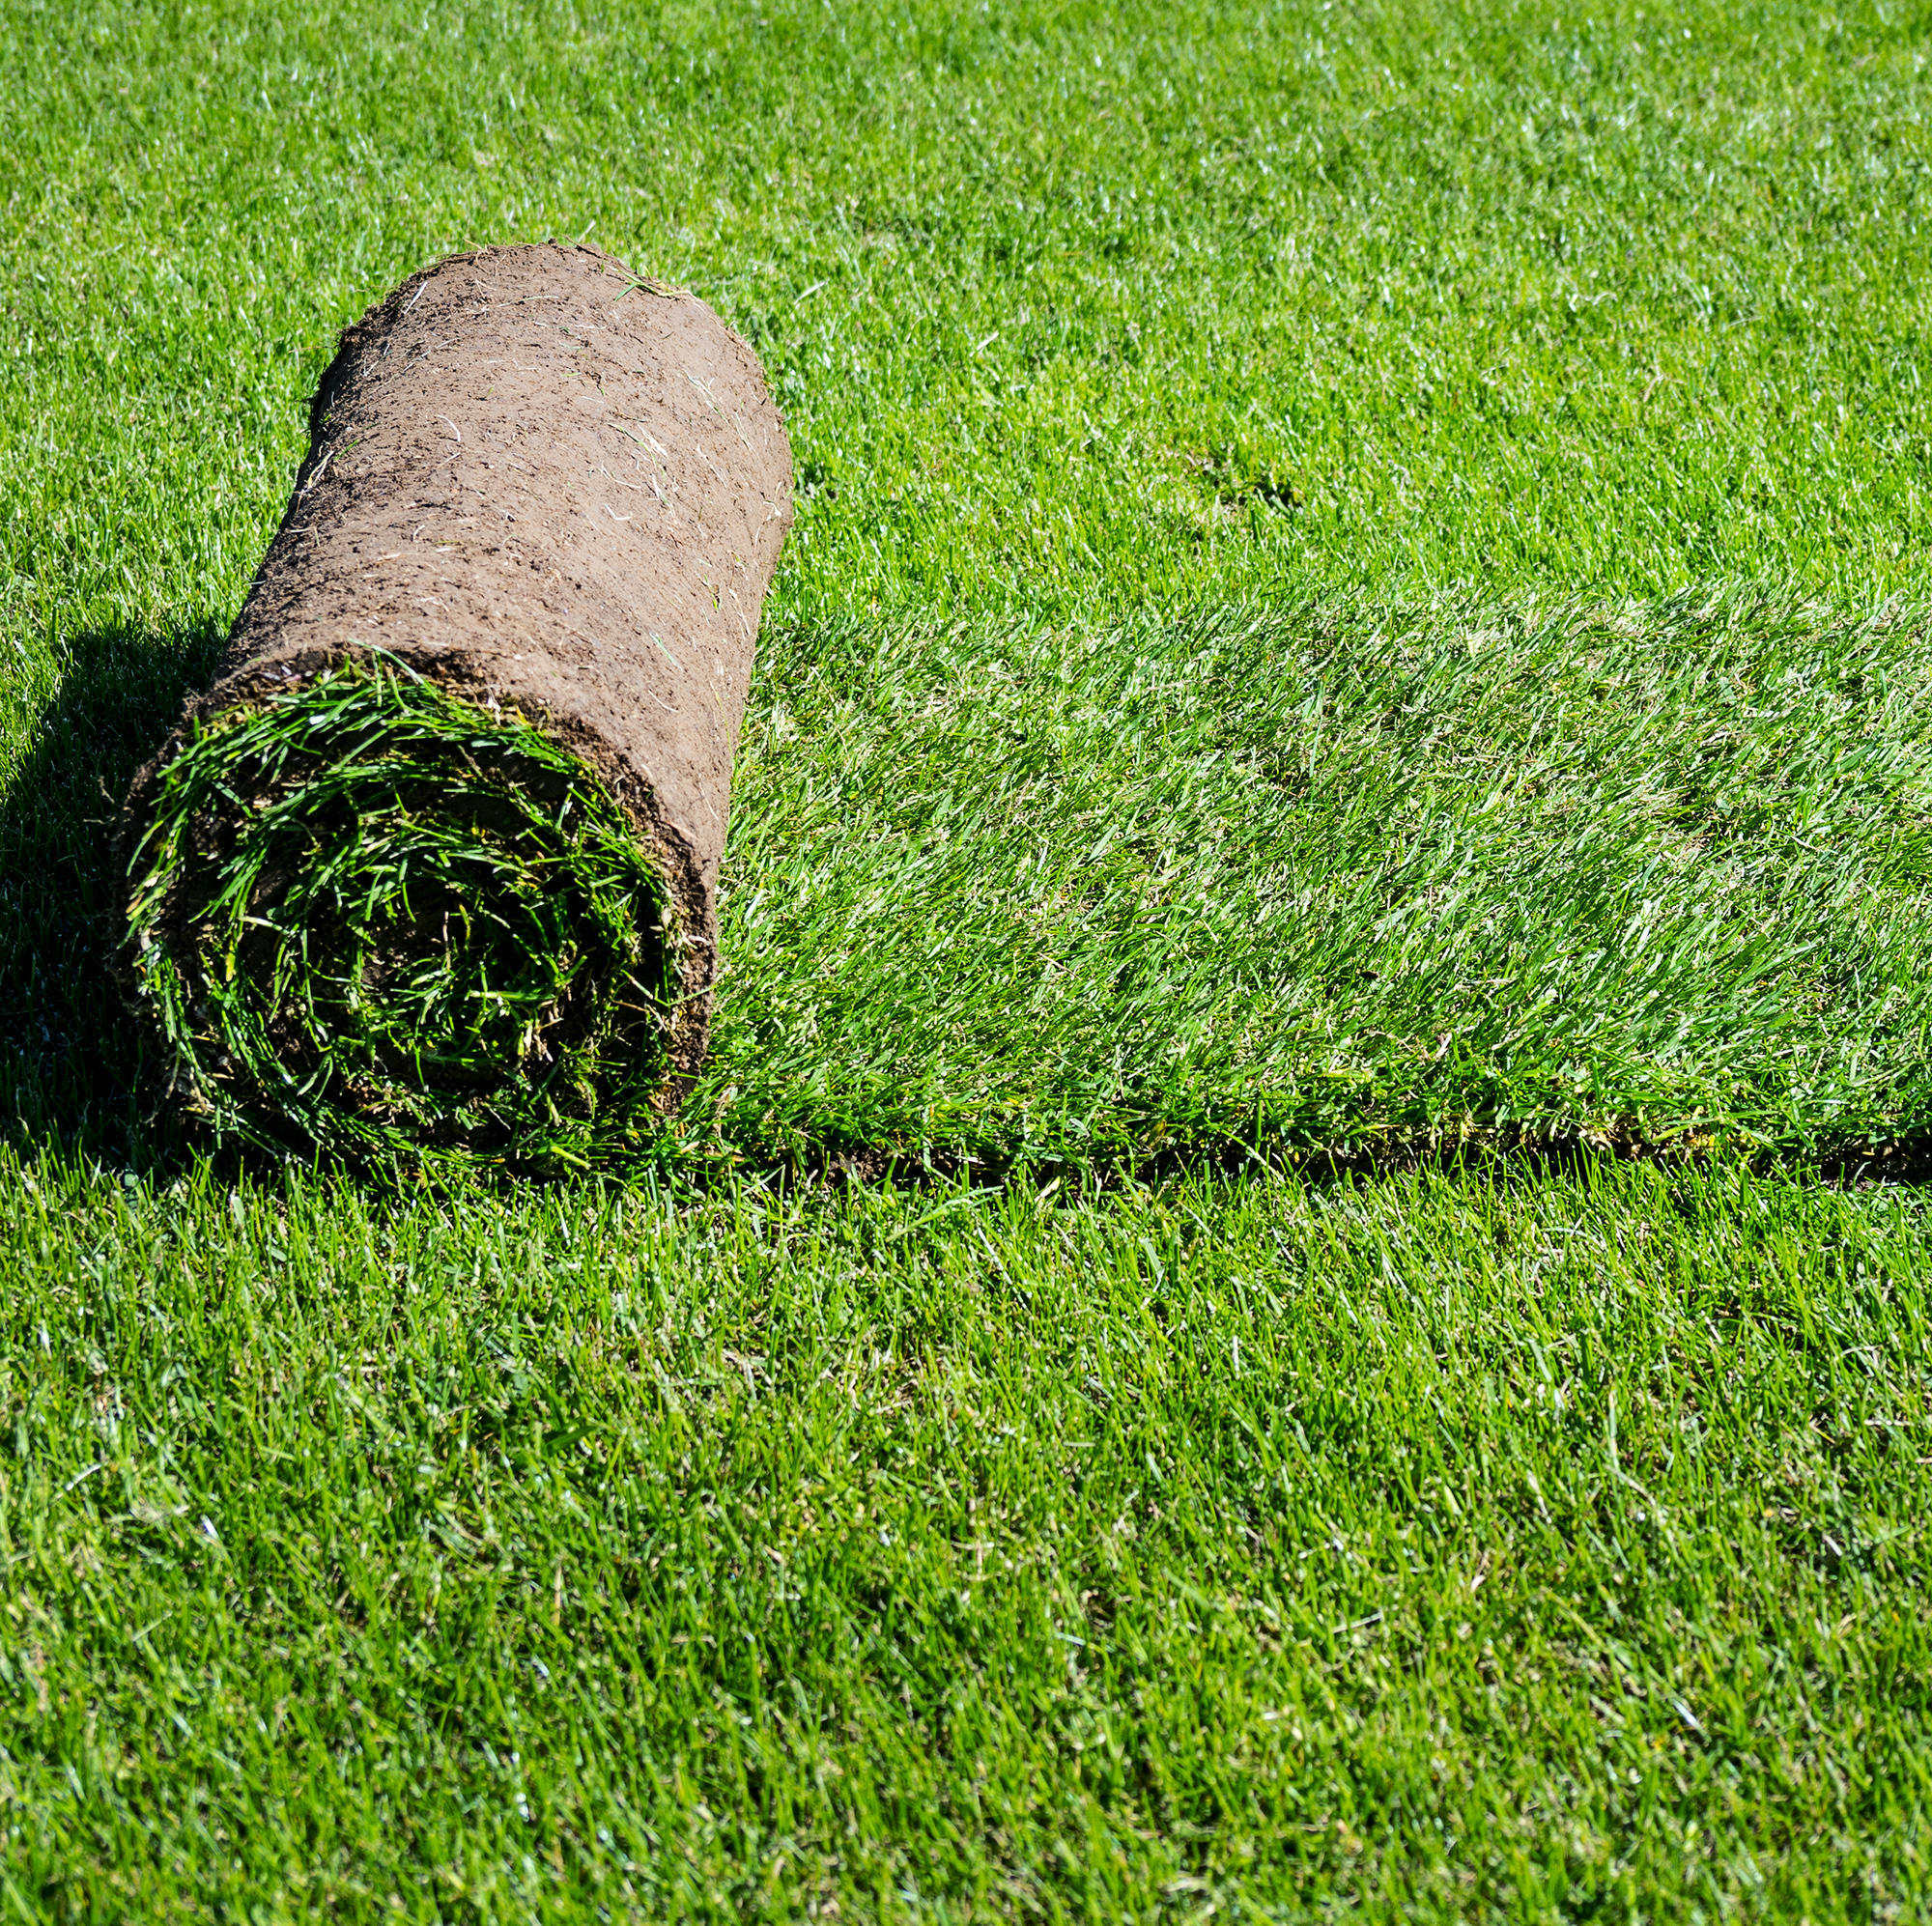 Locally grown, netting free Turf from Dorset on